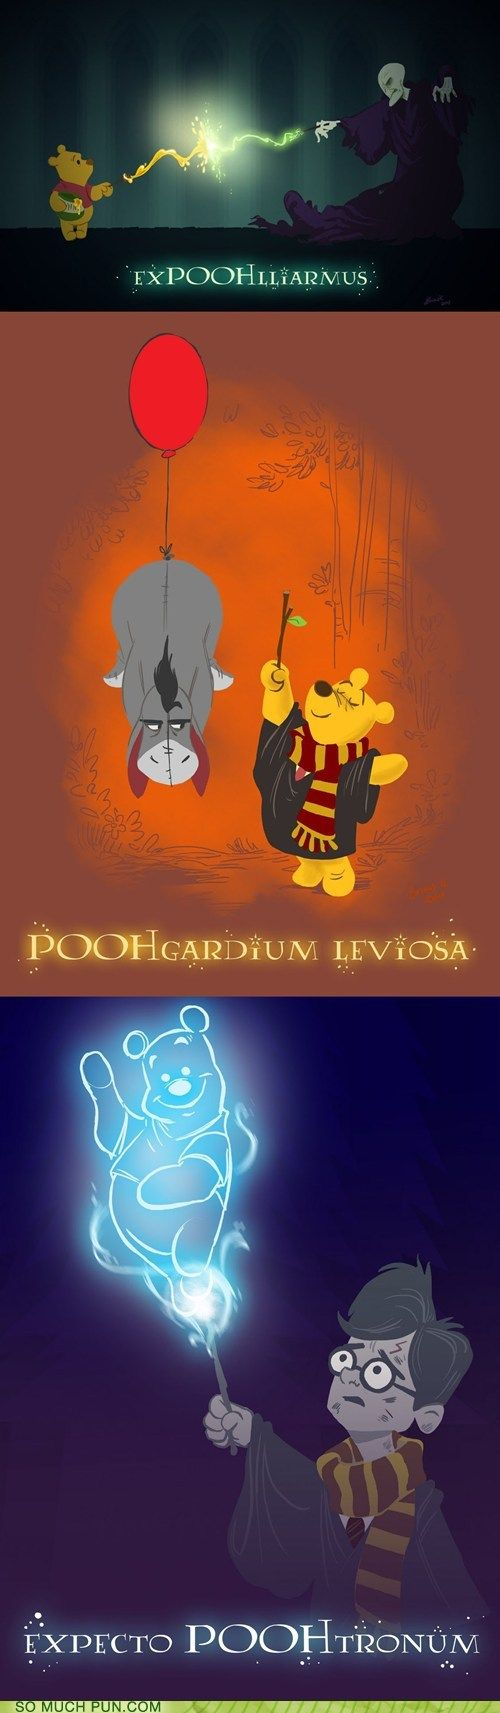 Harry Pooh-ter: Voldemort's come to steal Pooh's honey again!? Oh bother